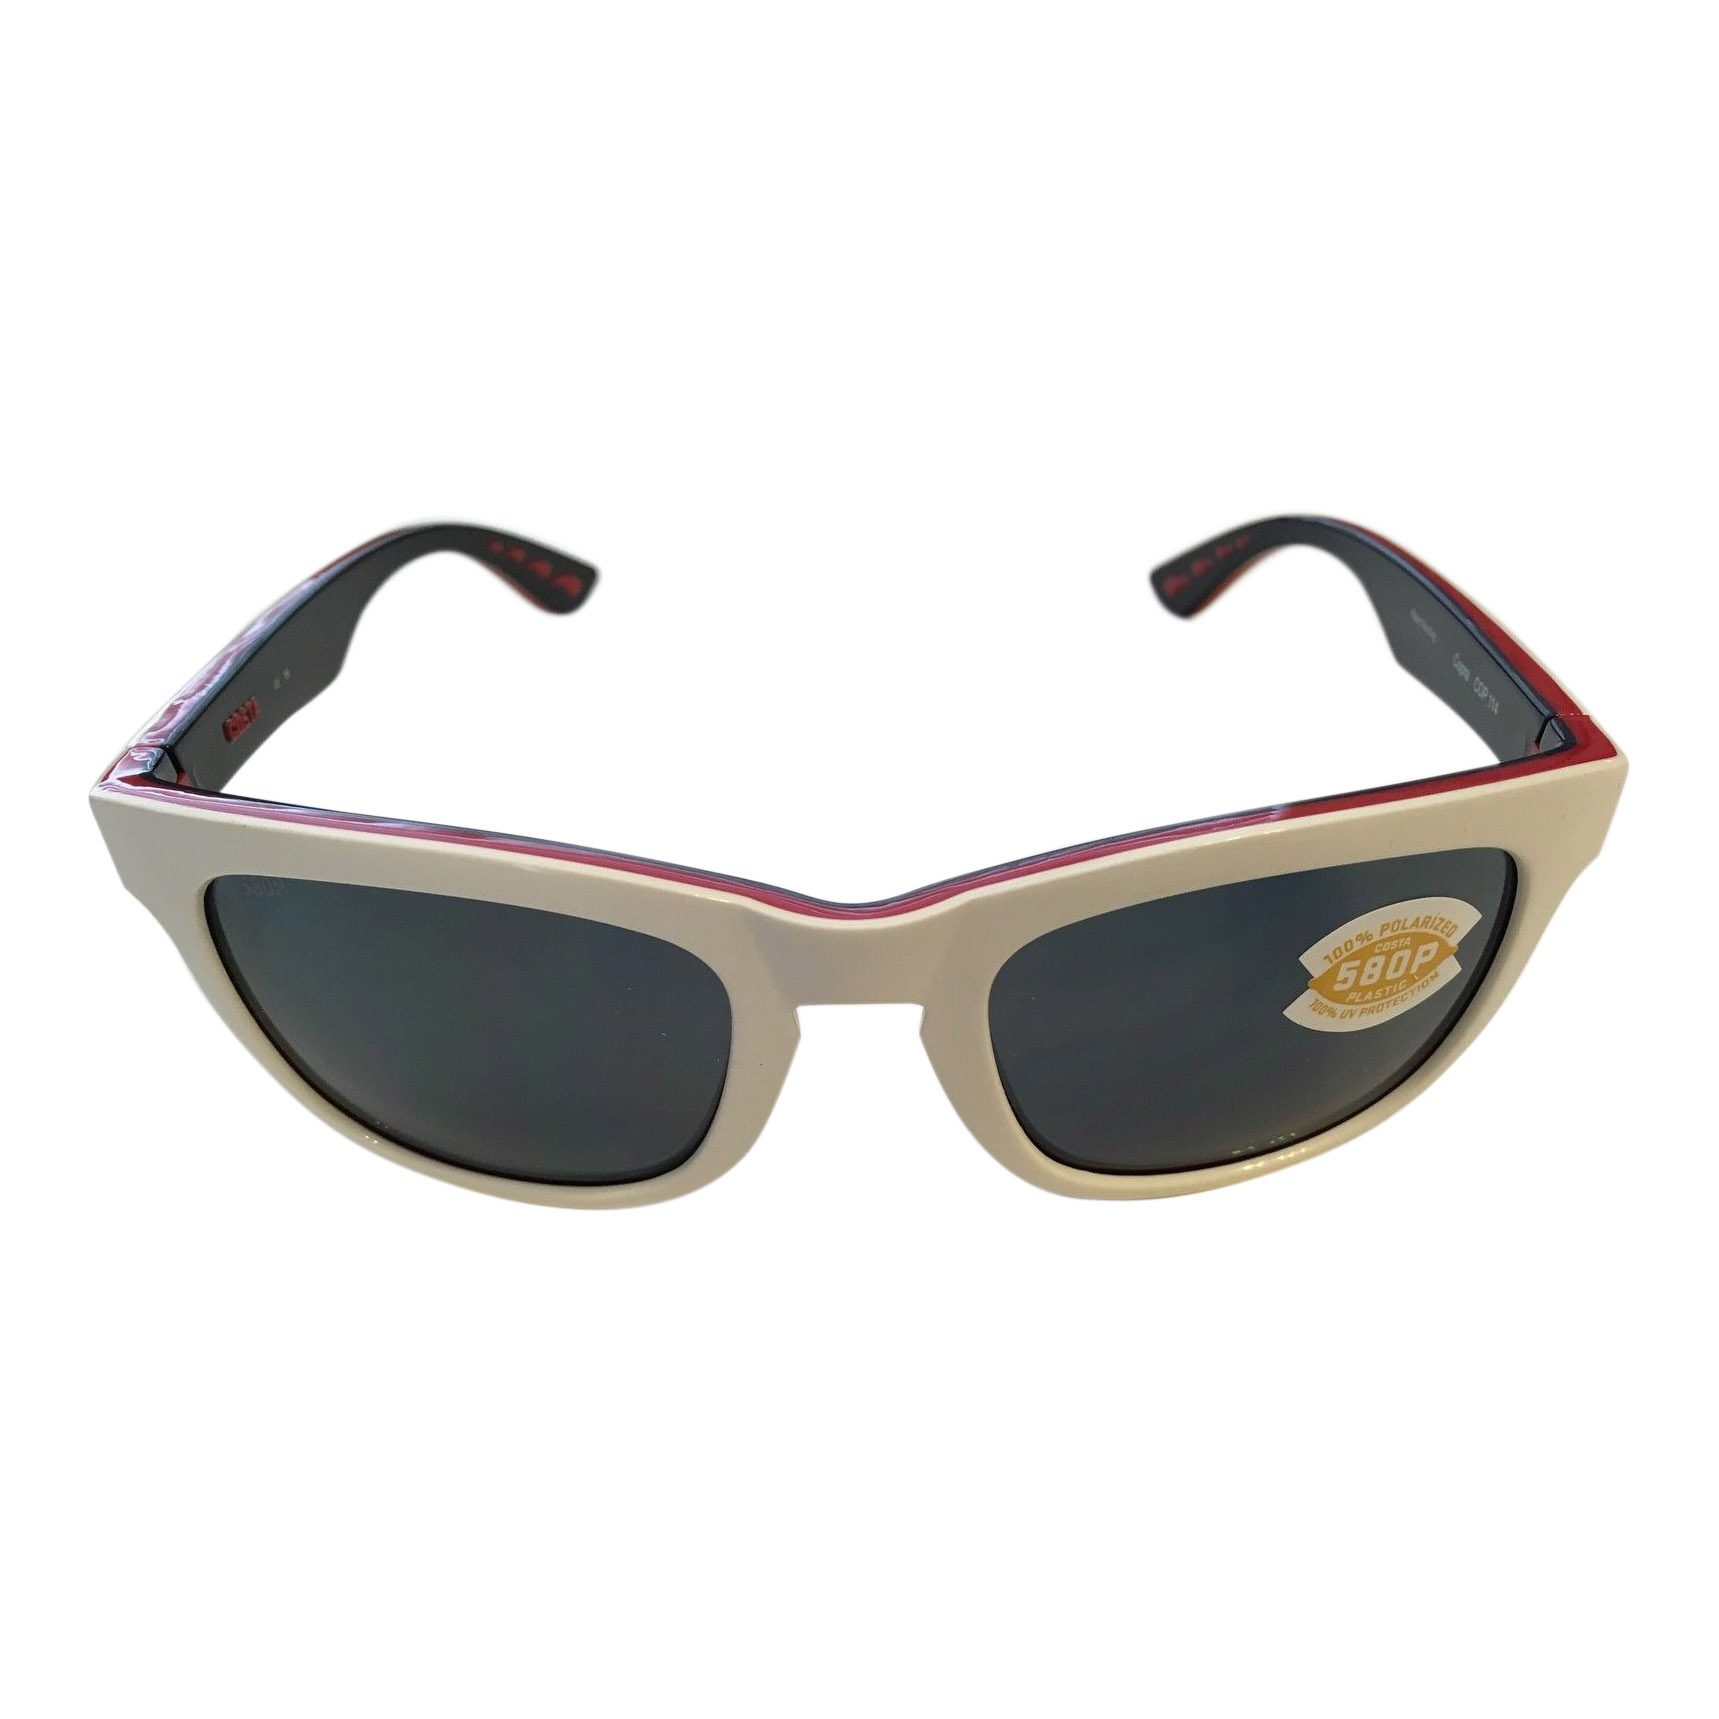 80b032283f Costa Del Mar Copra Sunglasses - USA Red White Blue Frame - Polarized Gray  Lens 580P